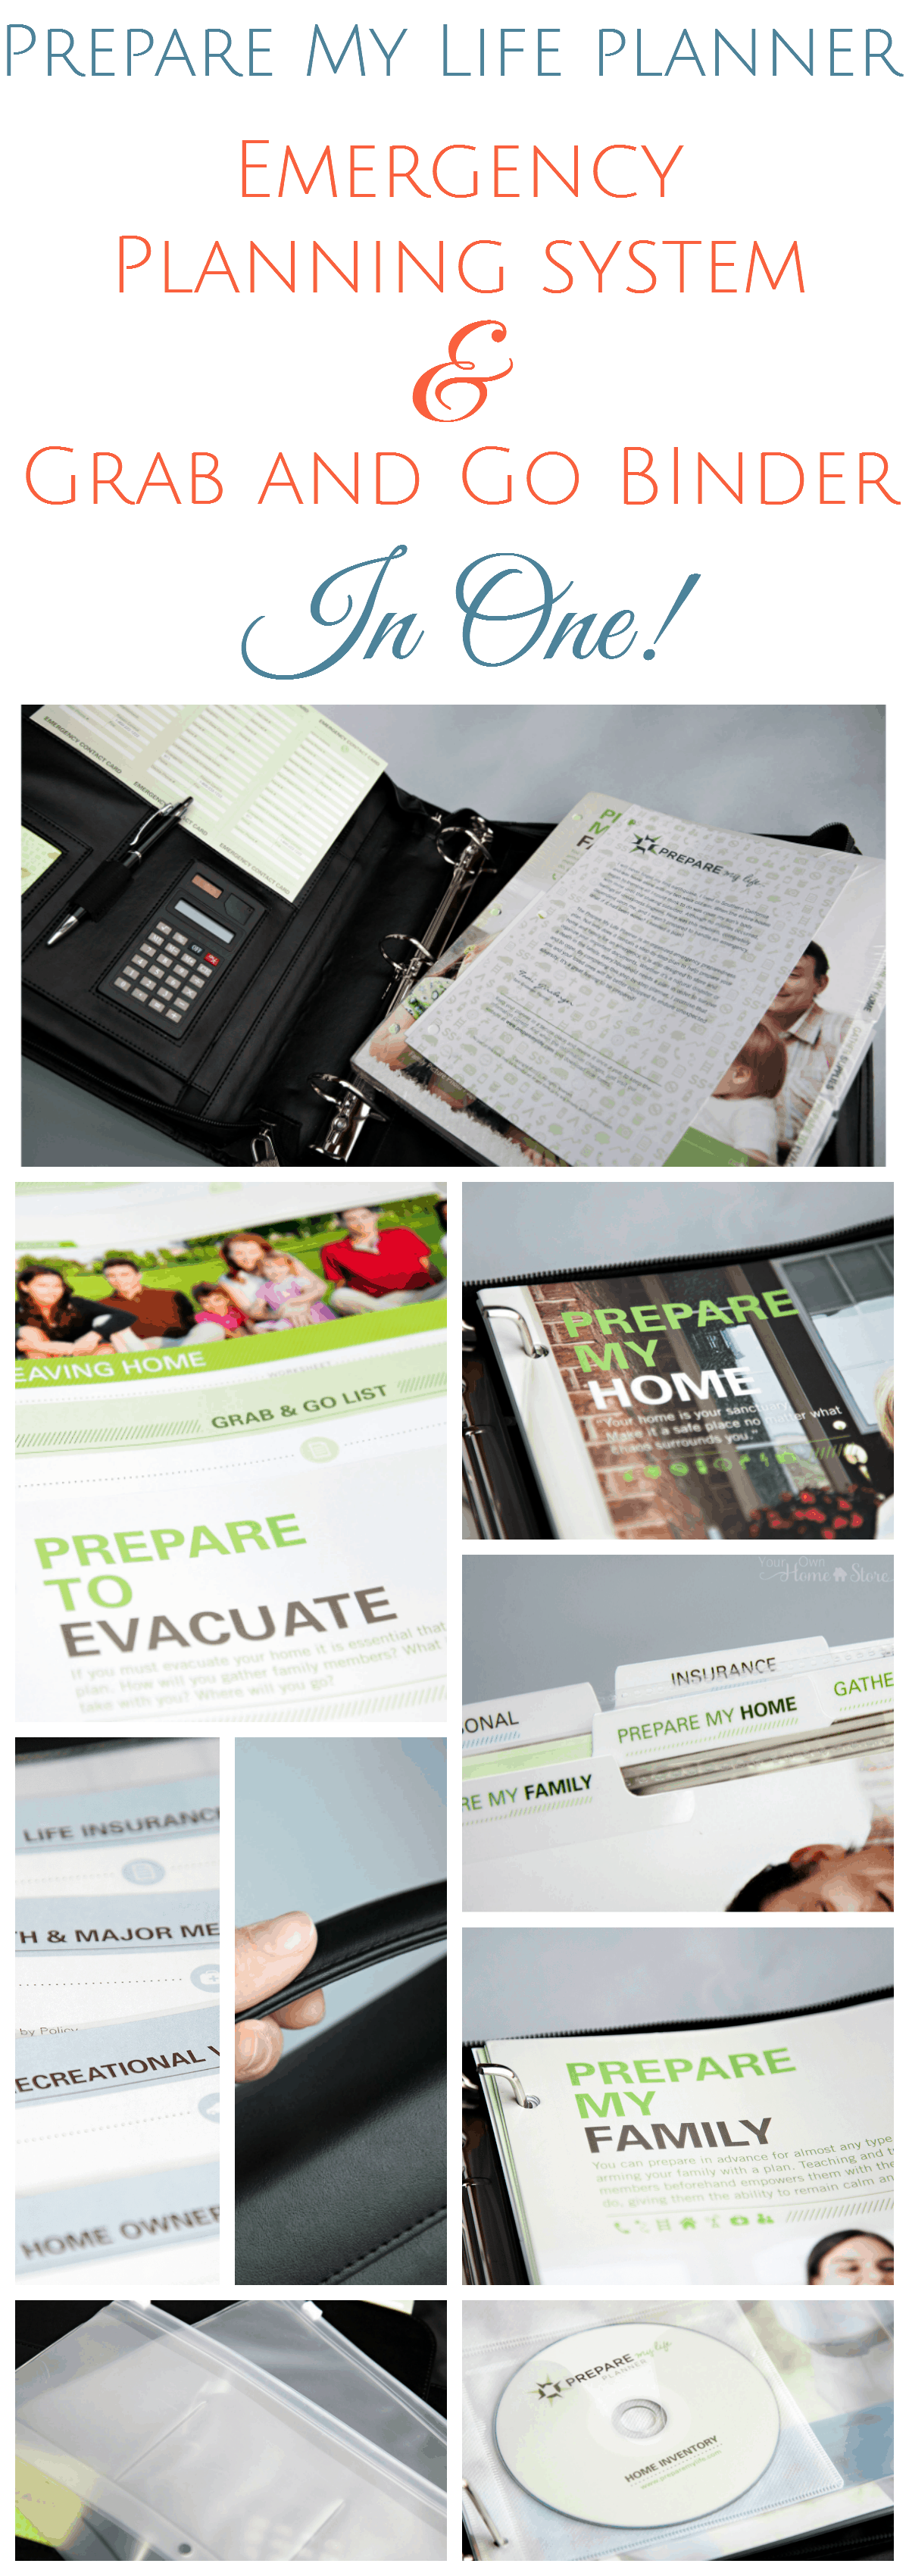 The Prepare My Life Planner: A emergency planning tool and grab and go binder in one